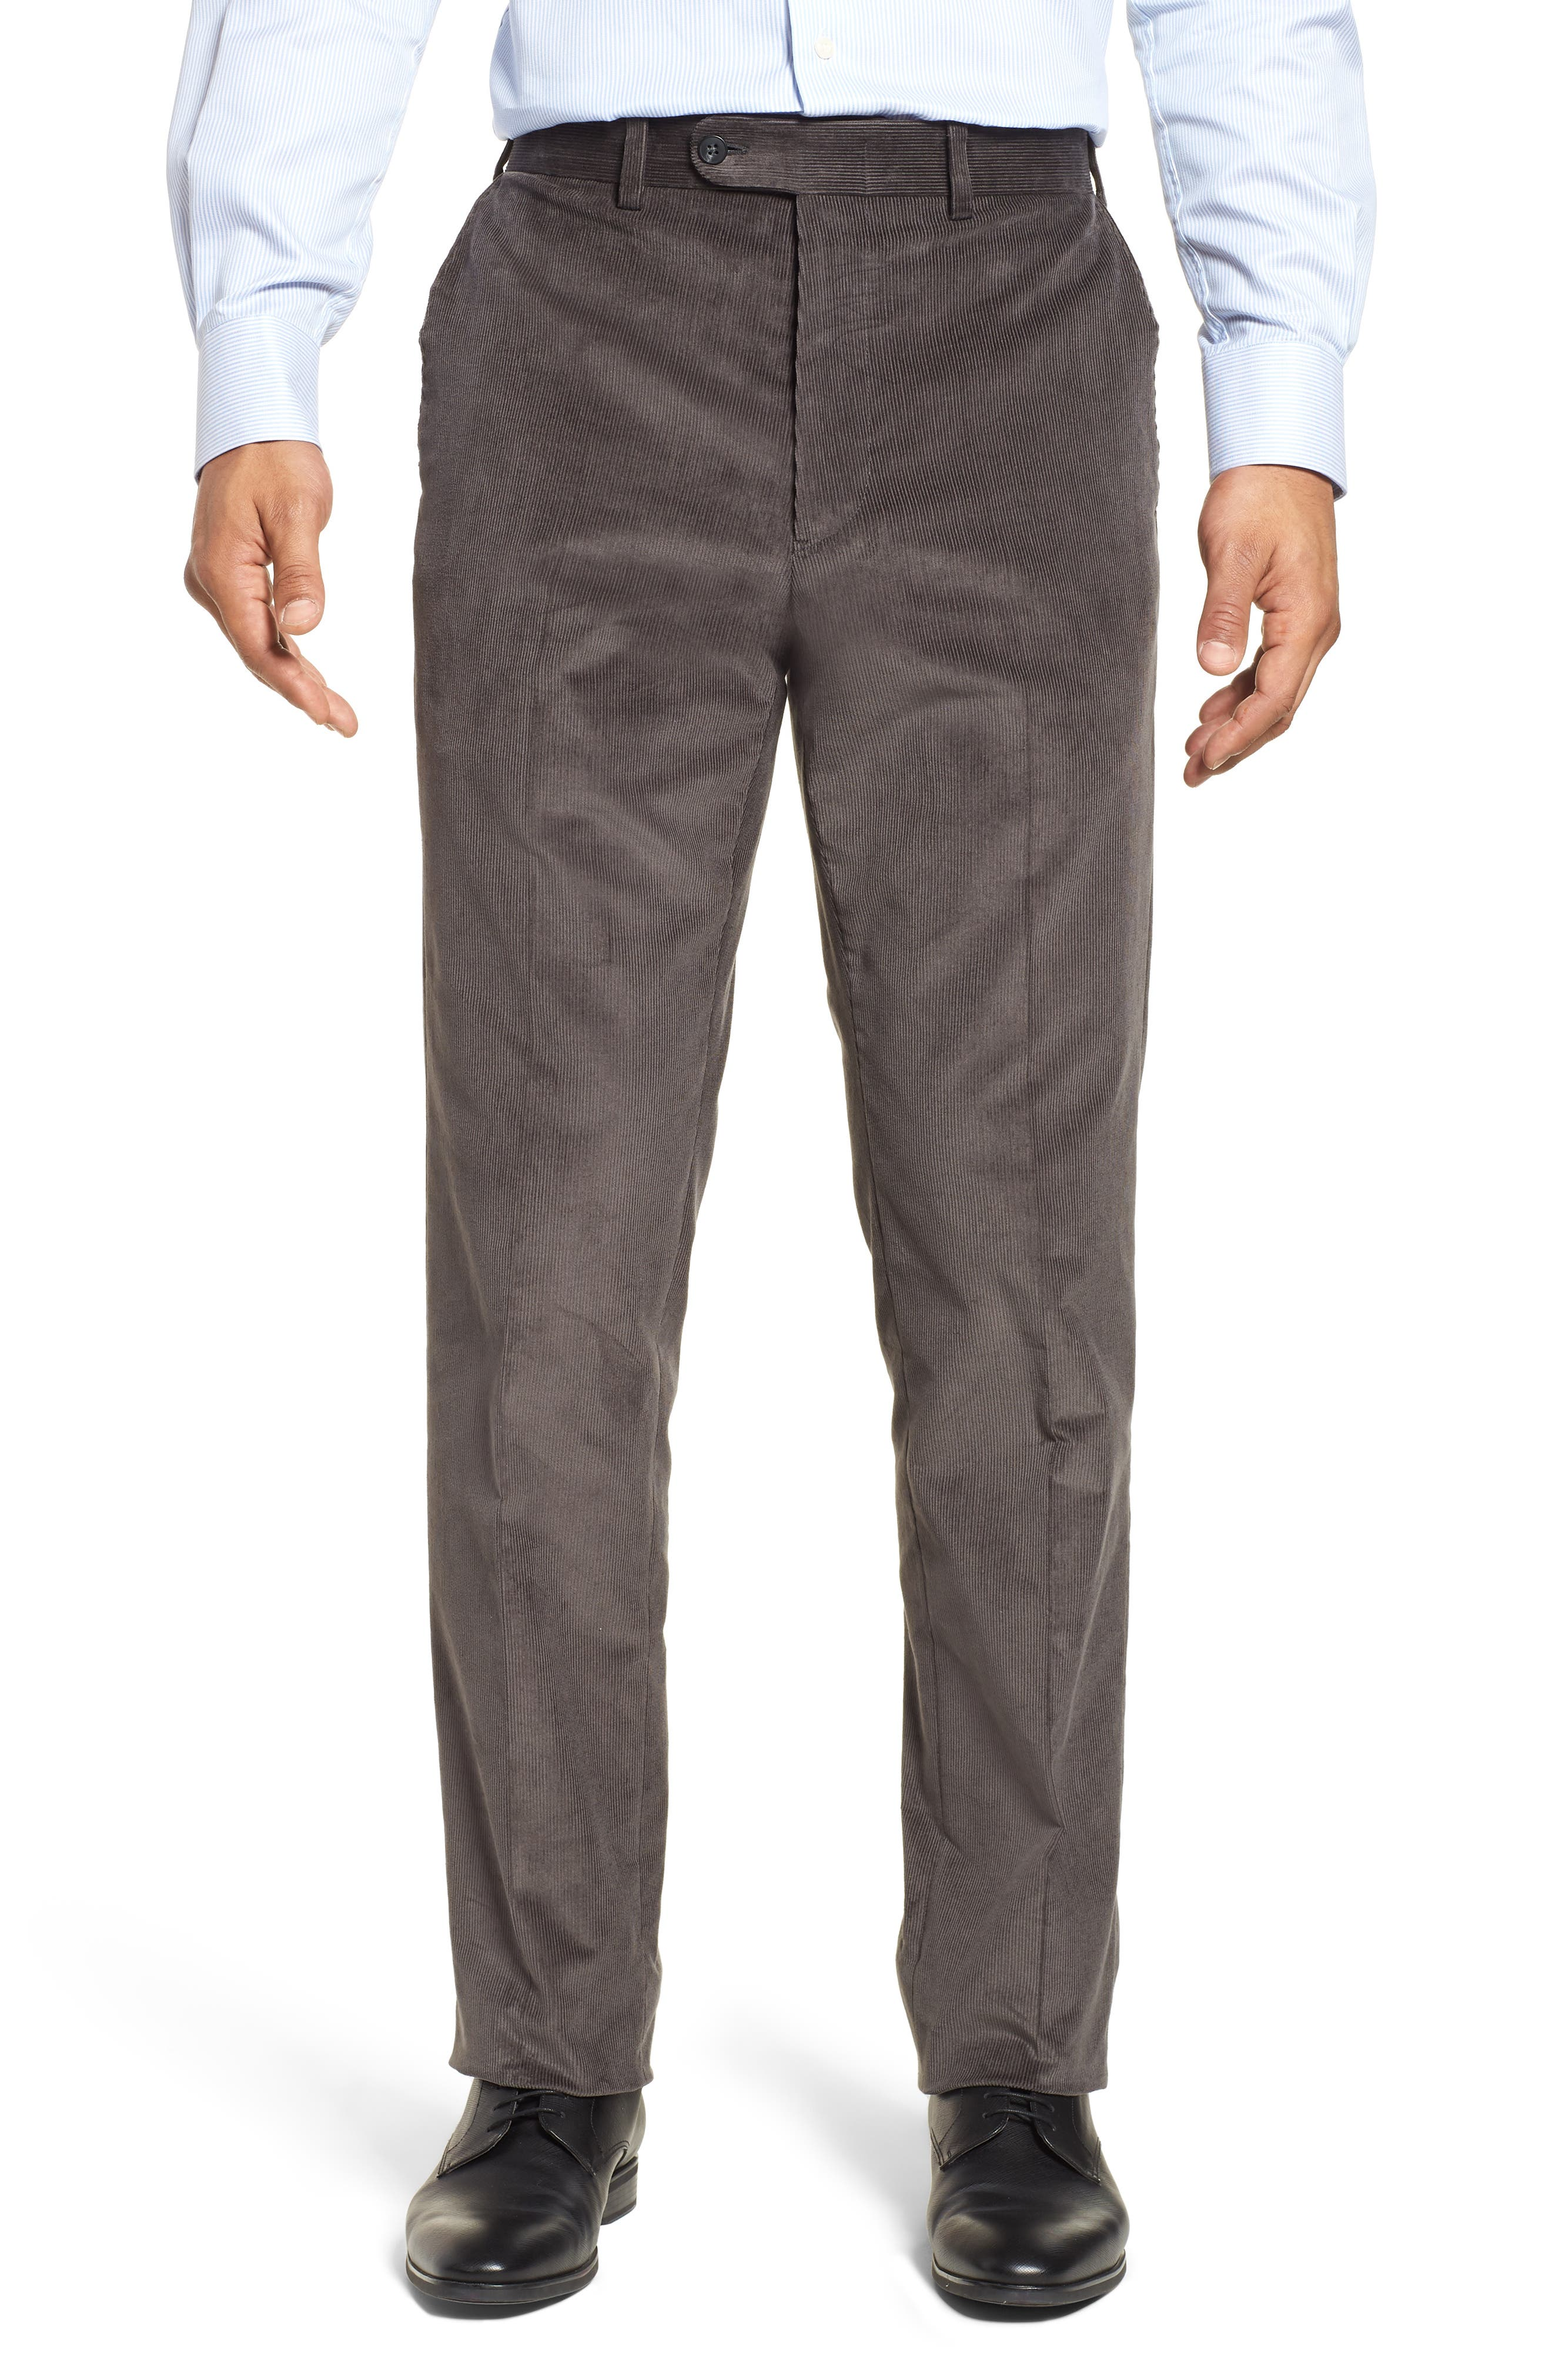 Torino Traditional Fit Flat Front Corduroy Trousers,                         Main,                         color, GREY